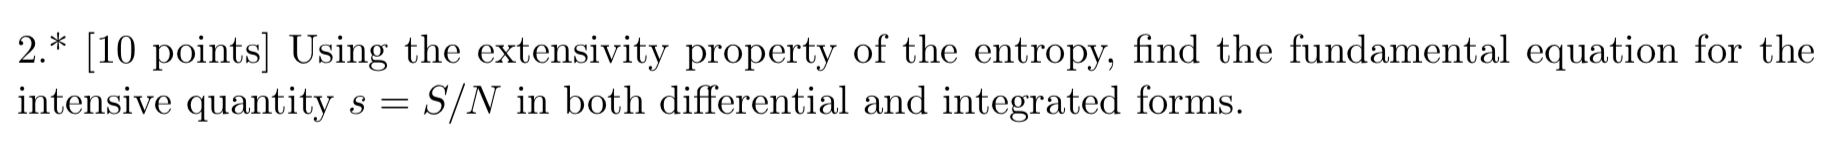 2.* [10 points] Using the extensivity property of the entropy, find the fundamental equation for the intensive quantity s - S/N in both differential and integrated forms